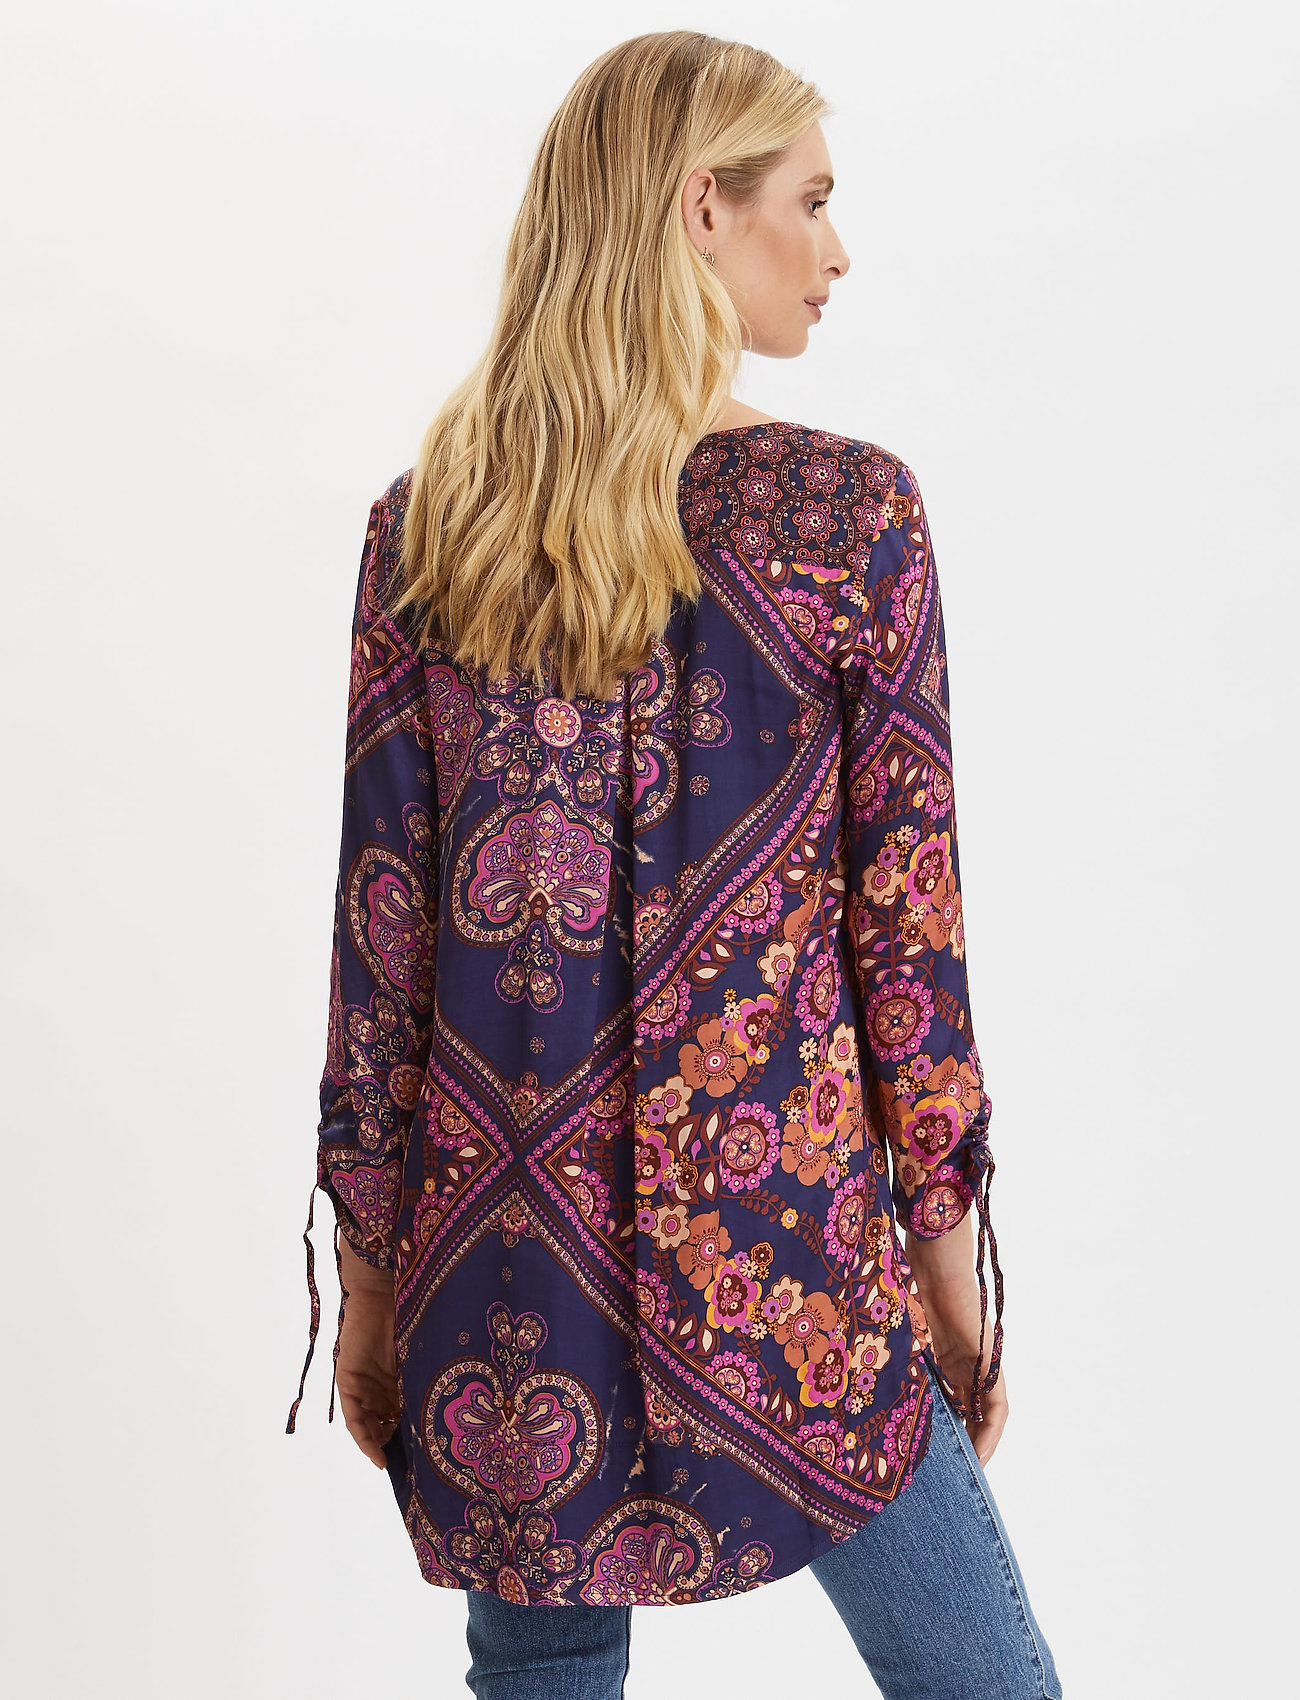 ODD MOLLY Insanely Right Tunic - Blouses & Shirts FIREWORK FUCHSIA